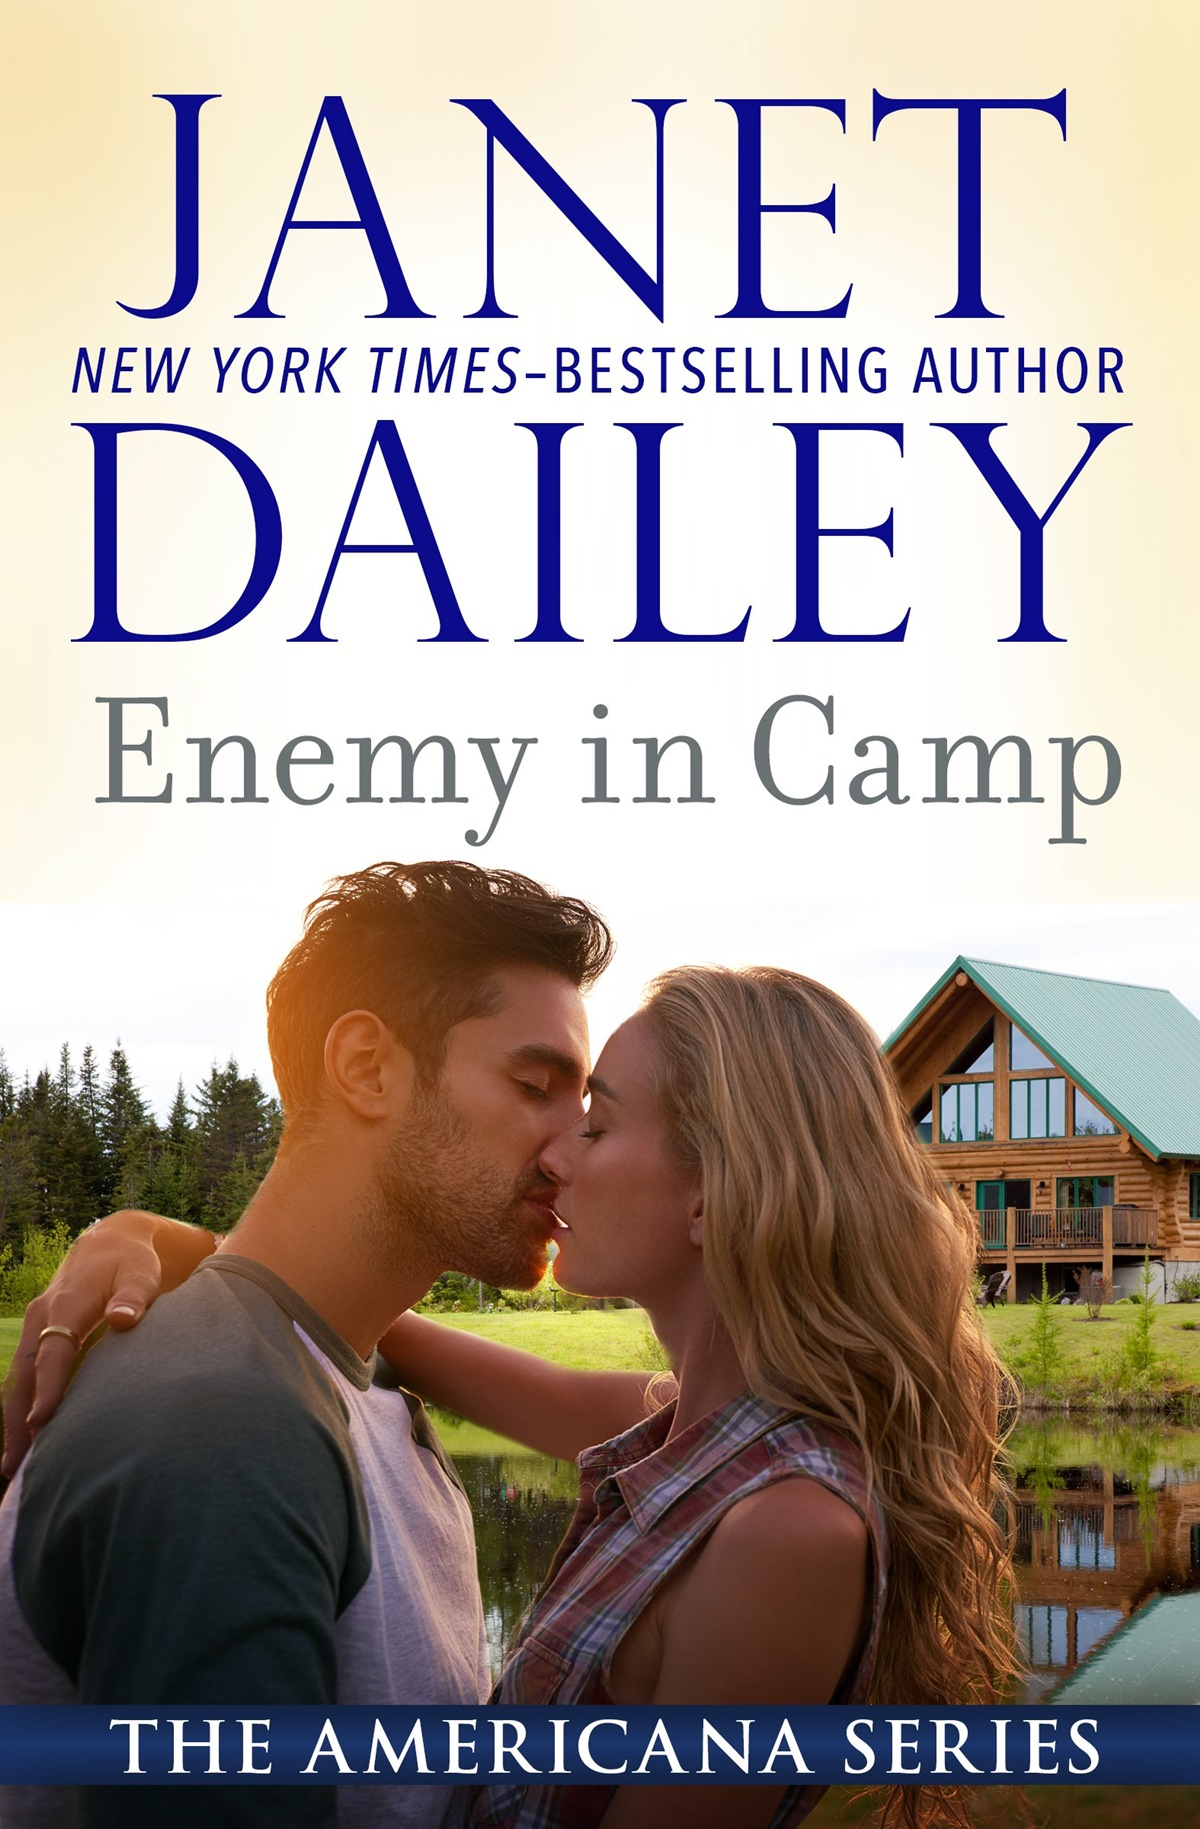 Janet Dailey Romance Novels, cover of Enemy in Camp by Janet Dailey, books